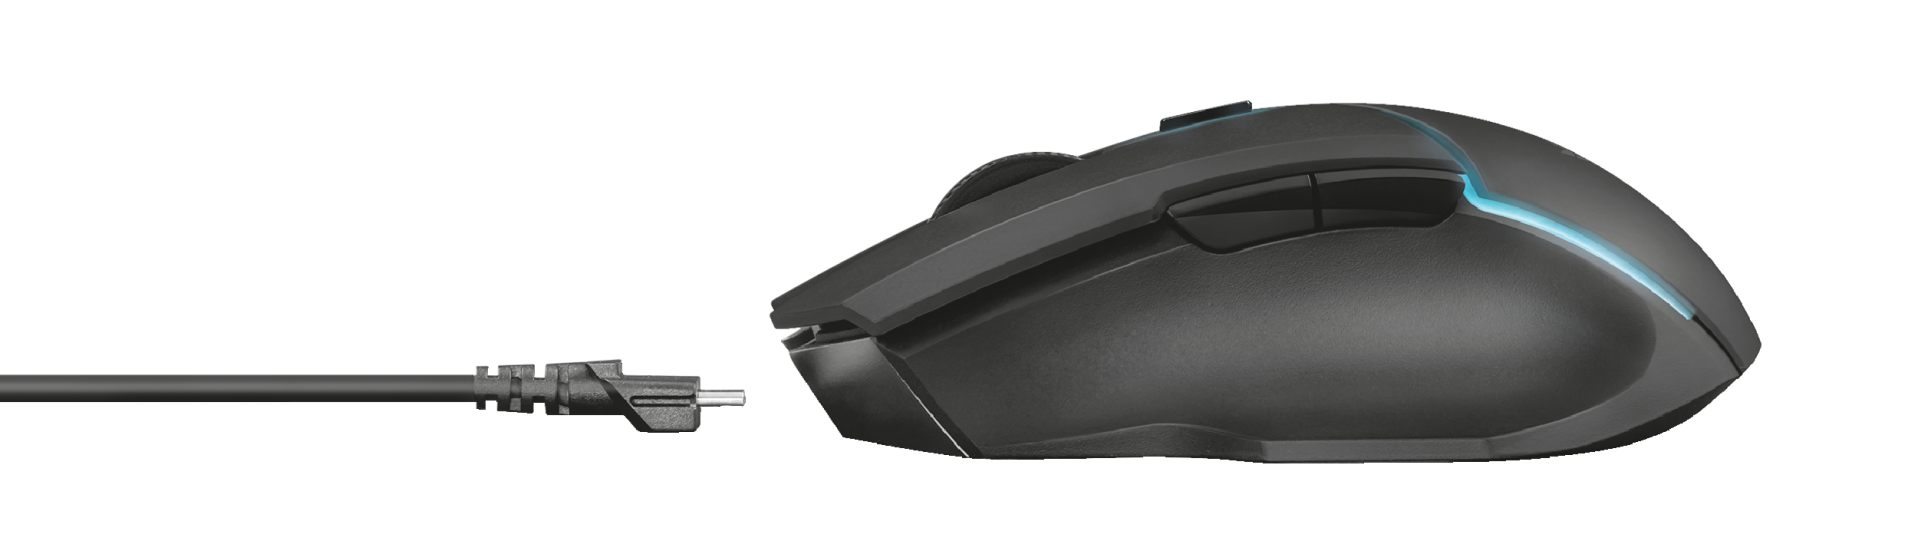 GXT 161 Disan Wireless Gaming Mouse-Side